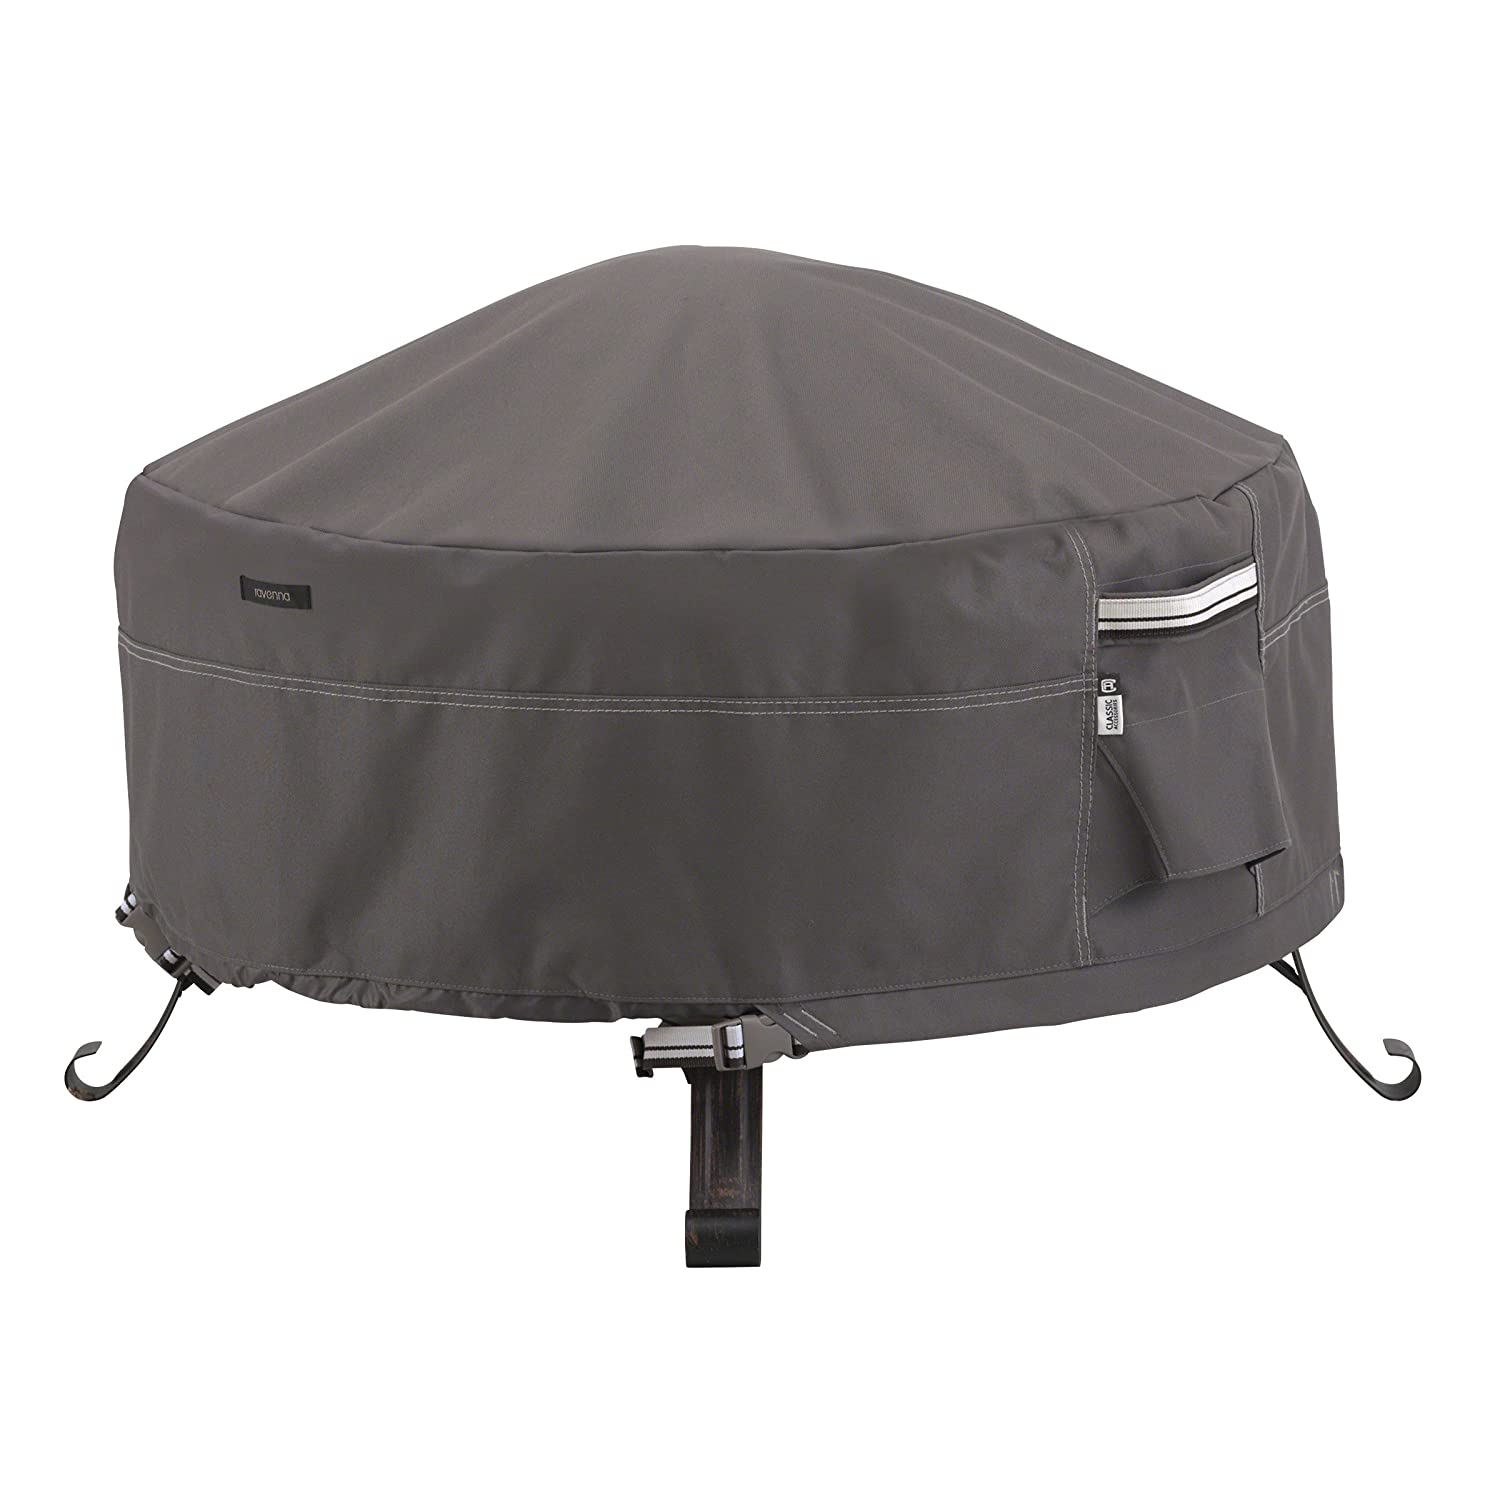 Classic Accessories Ravenna Full Coverage Round Fire Pit Cover-Premium Outdoor Cover with Durable and Water Resistant Fabric, Small (55-484-015101-EC)